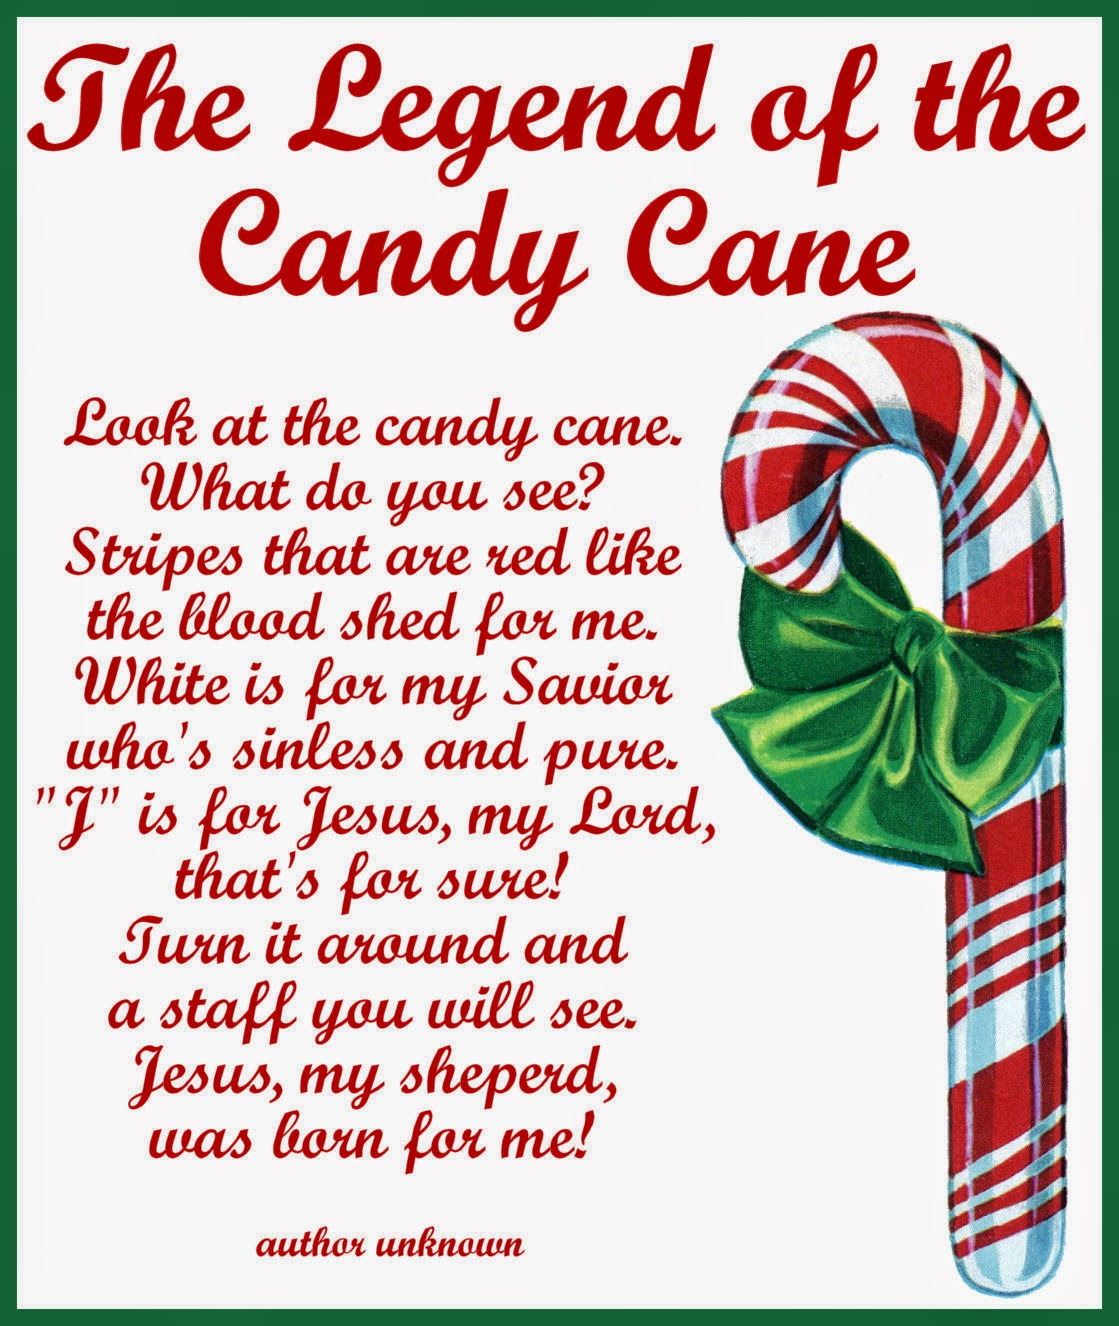 Enterprising image with the story of the candy cane printable